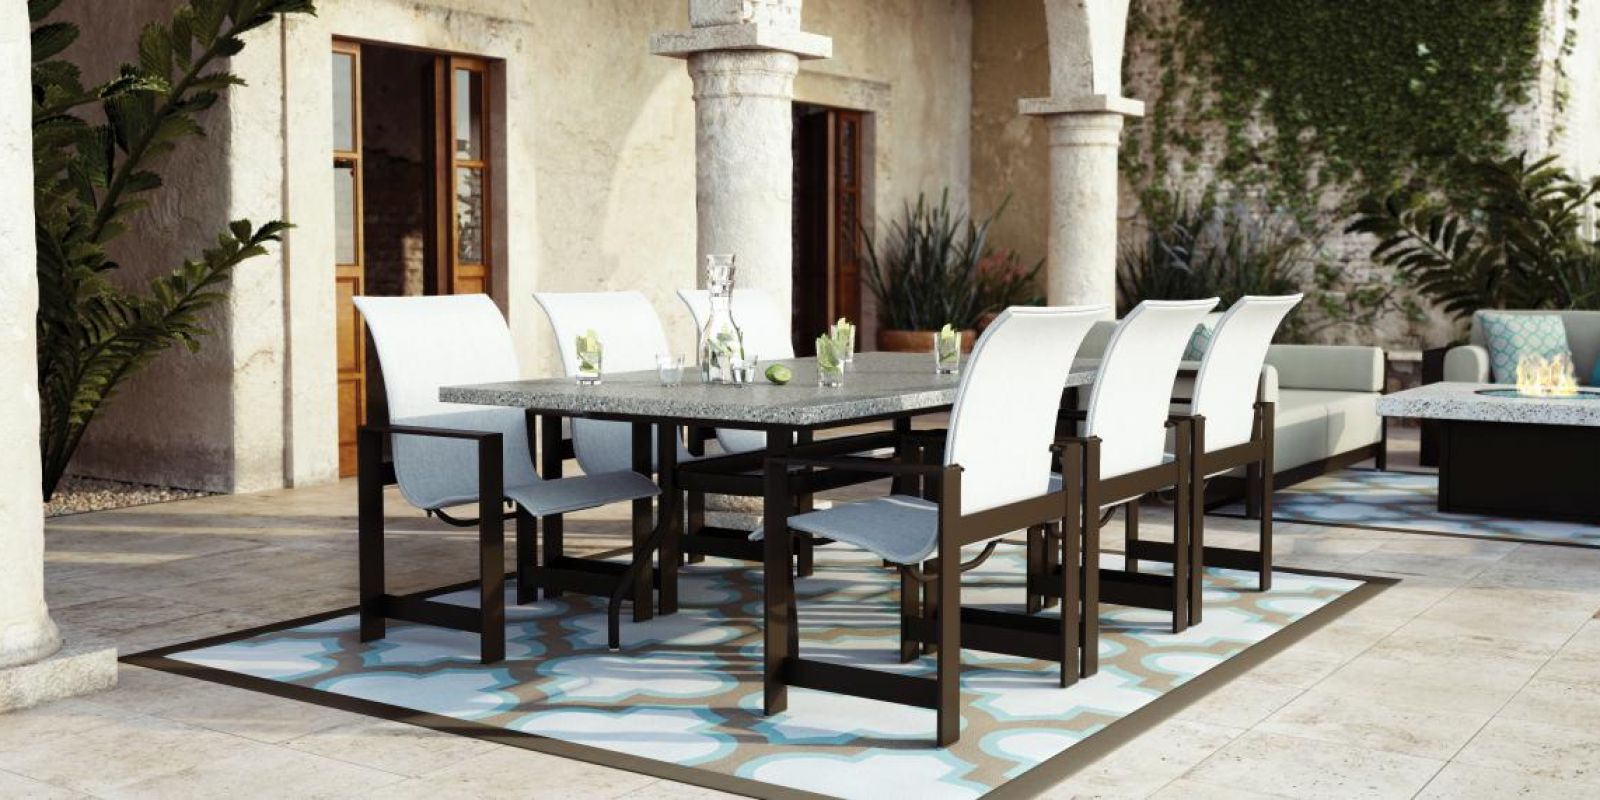 Outdoor Patio Design Specialist | American Casual Living on Casual Living Patio id=66950